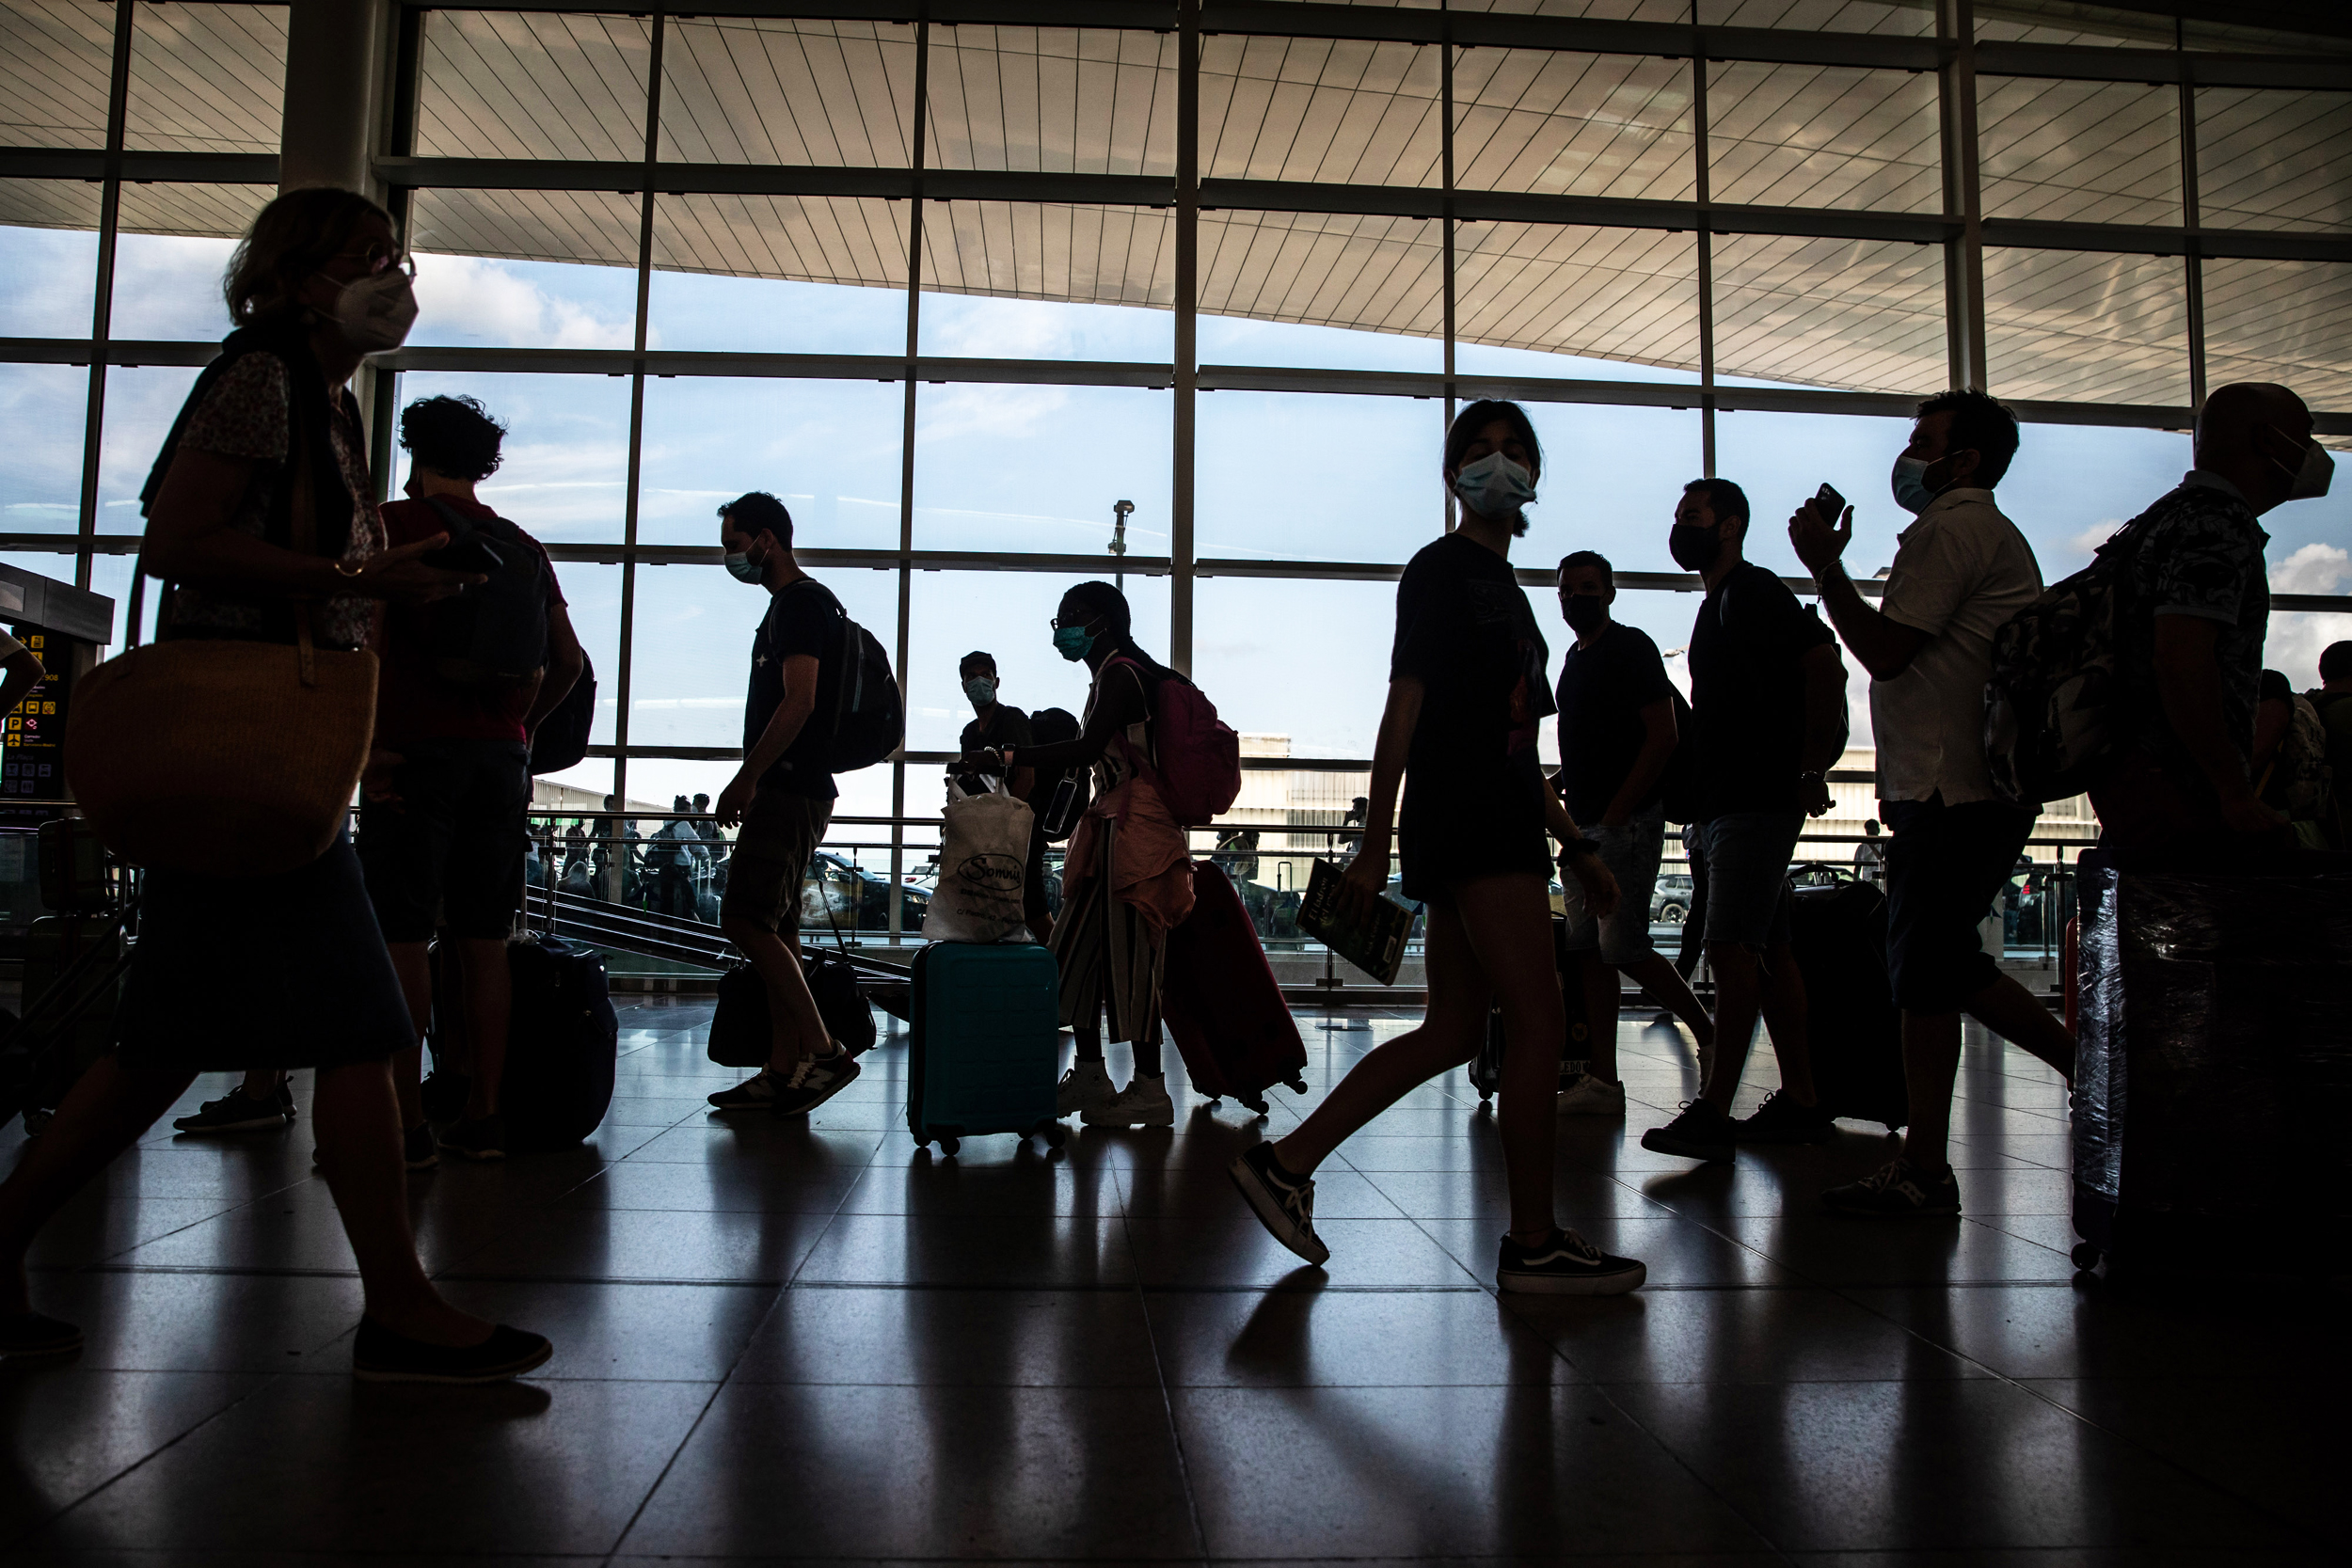 U.S. to ease Covid travel entry rules, require vaccinations for foreign visitors